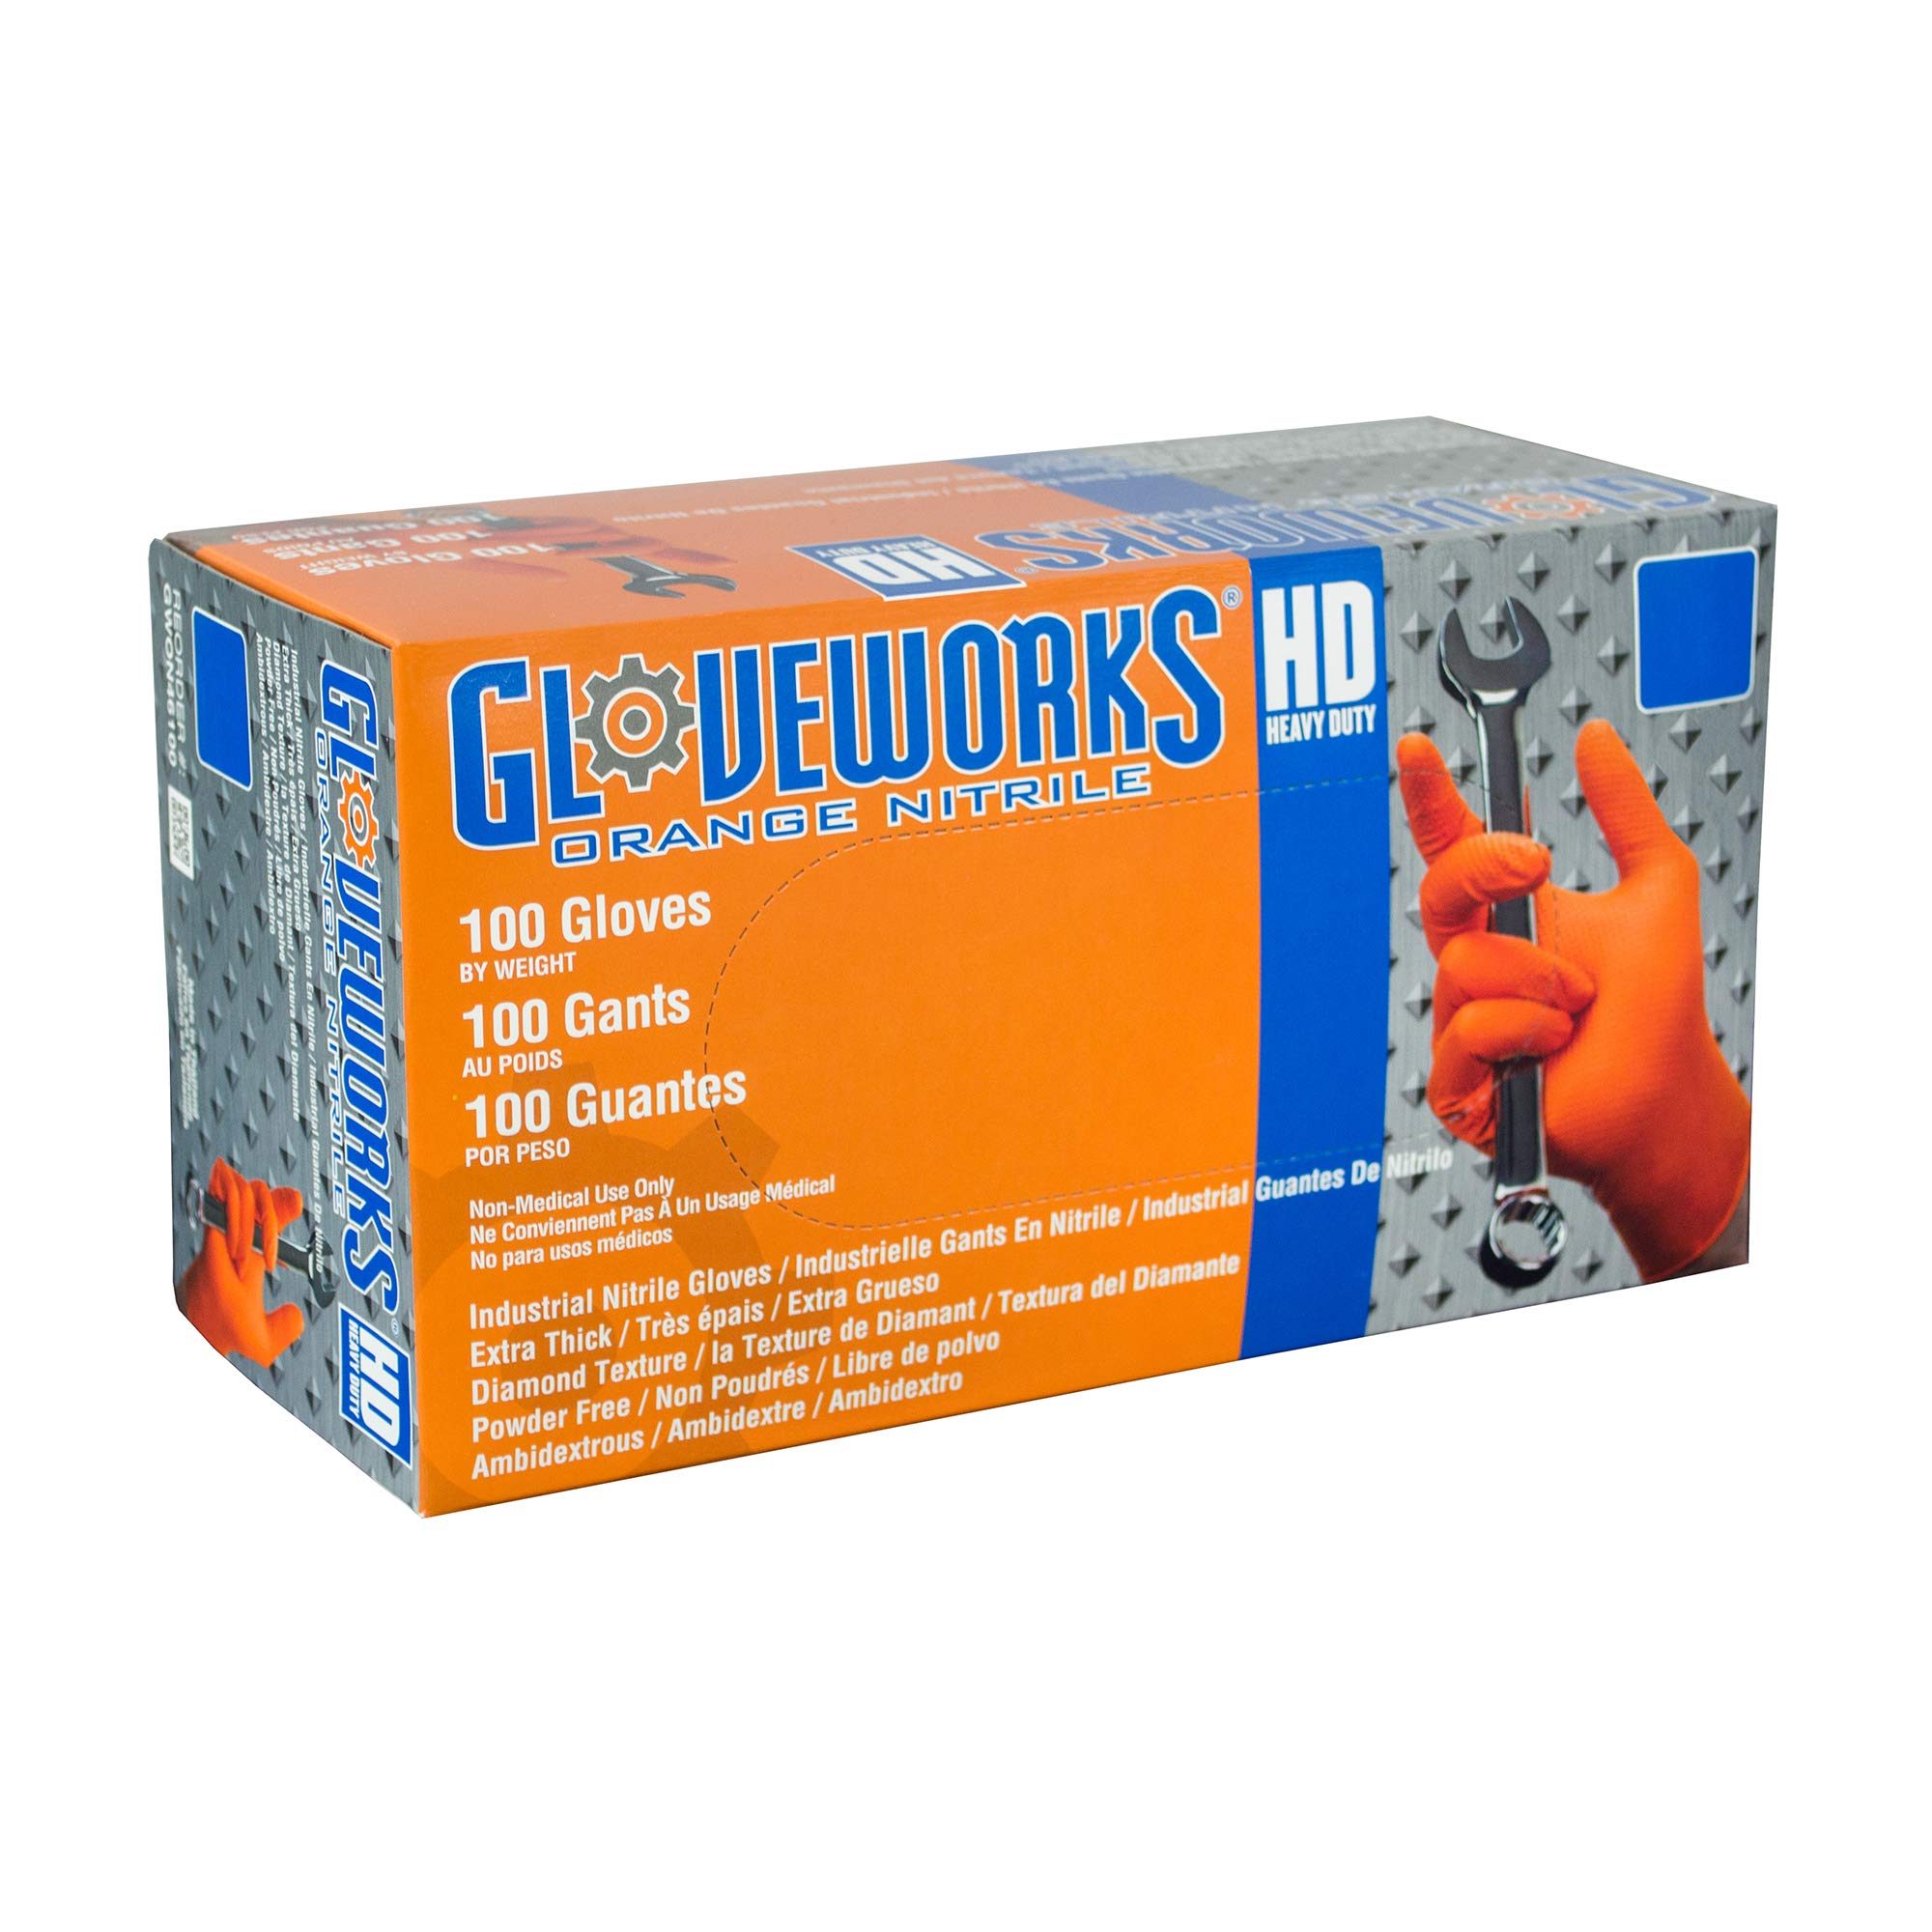 AMMEX - GWON44100 - Nitrile Gloves - Gloveworks, Heavy Duty, Disposable, Powder Free, Latex Rubber Free, 8 mil, Medium, Orange (Case of 1000) by Ammex (Image #6)